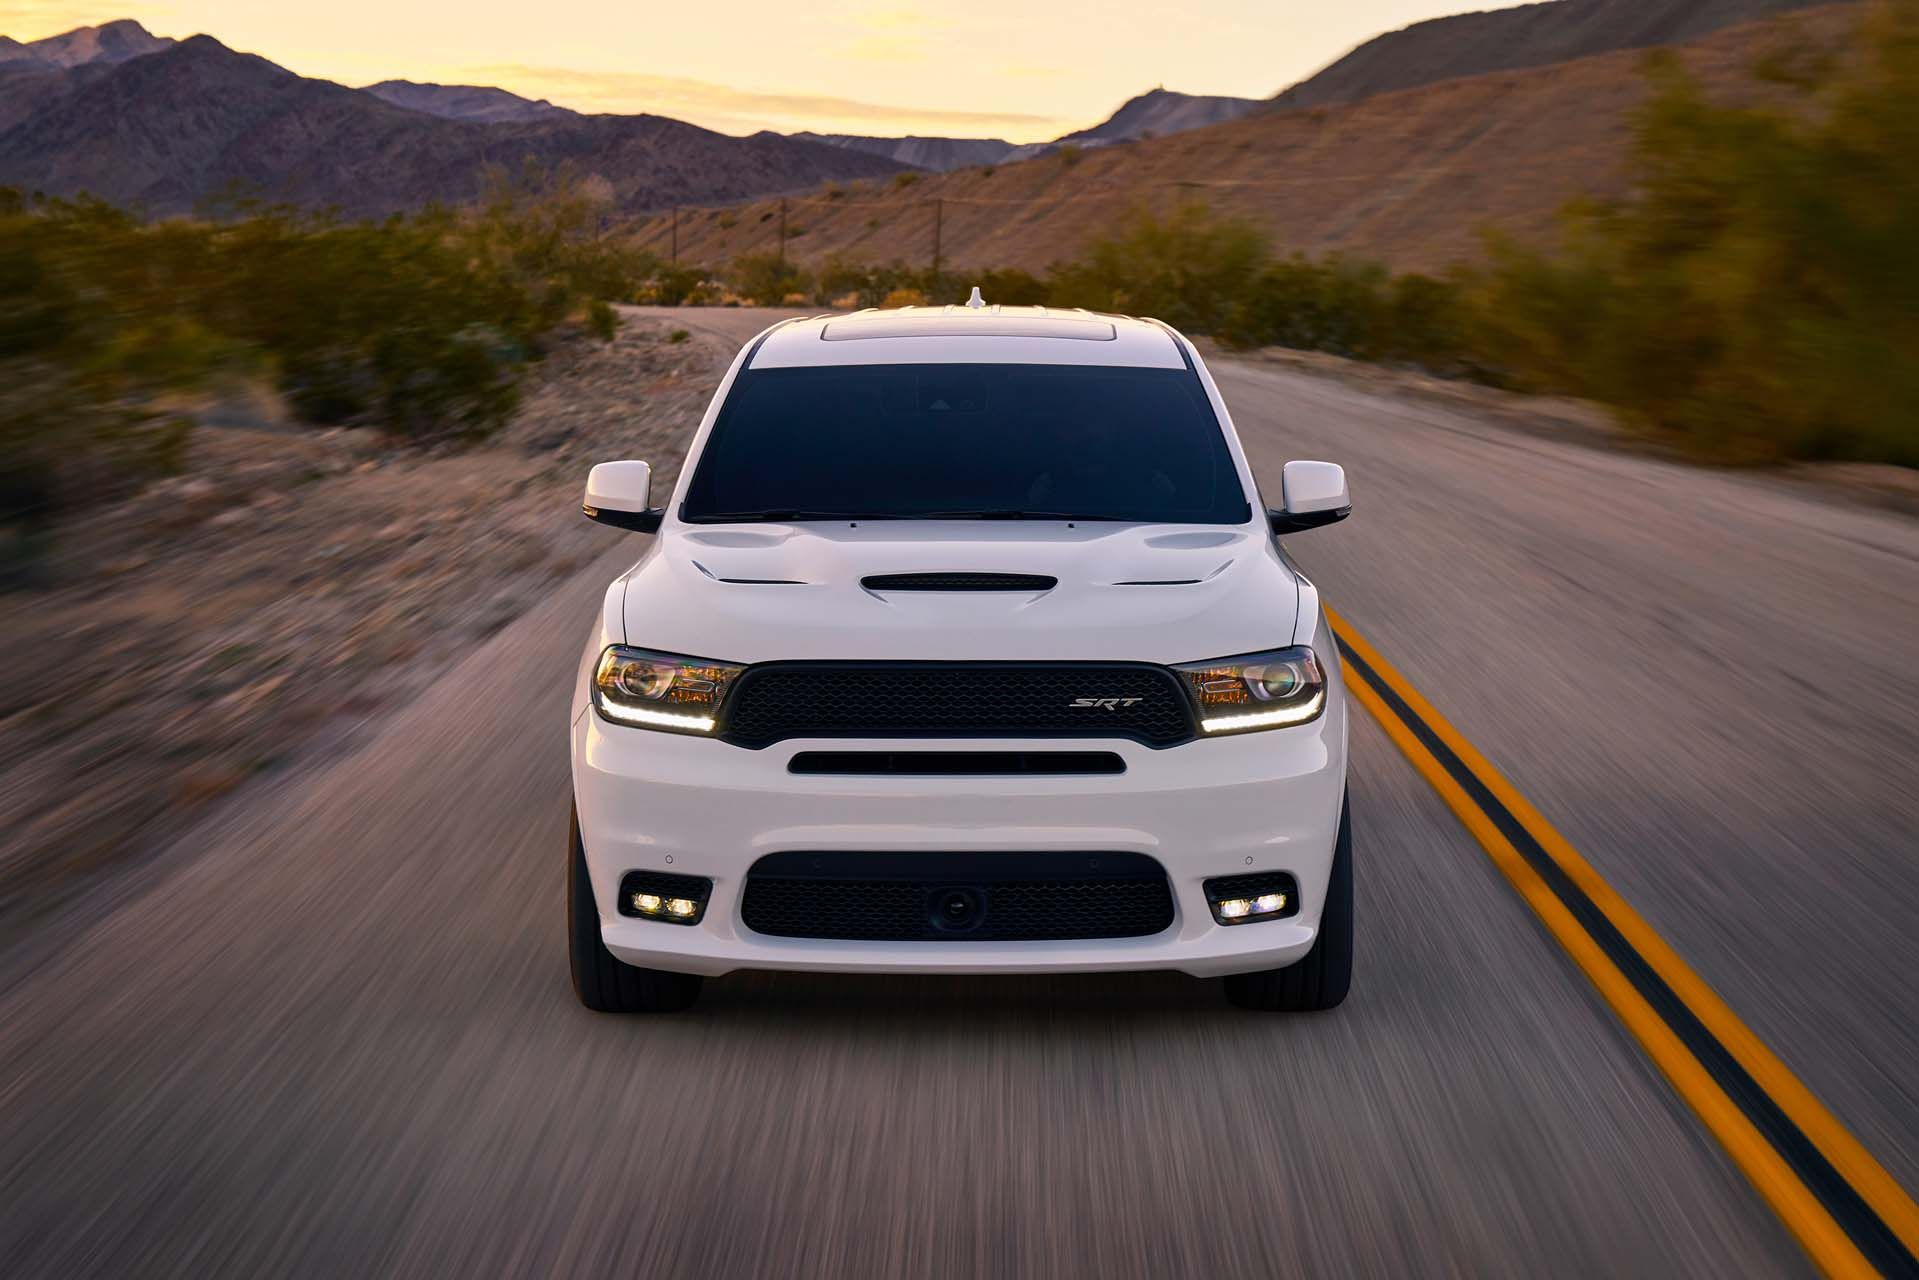 Is the 2018 dodge durango srt actually faster than the jeep grand cherokee srt